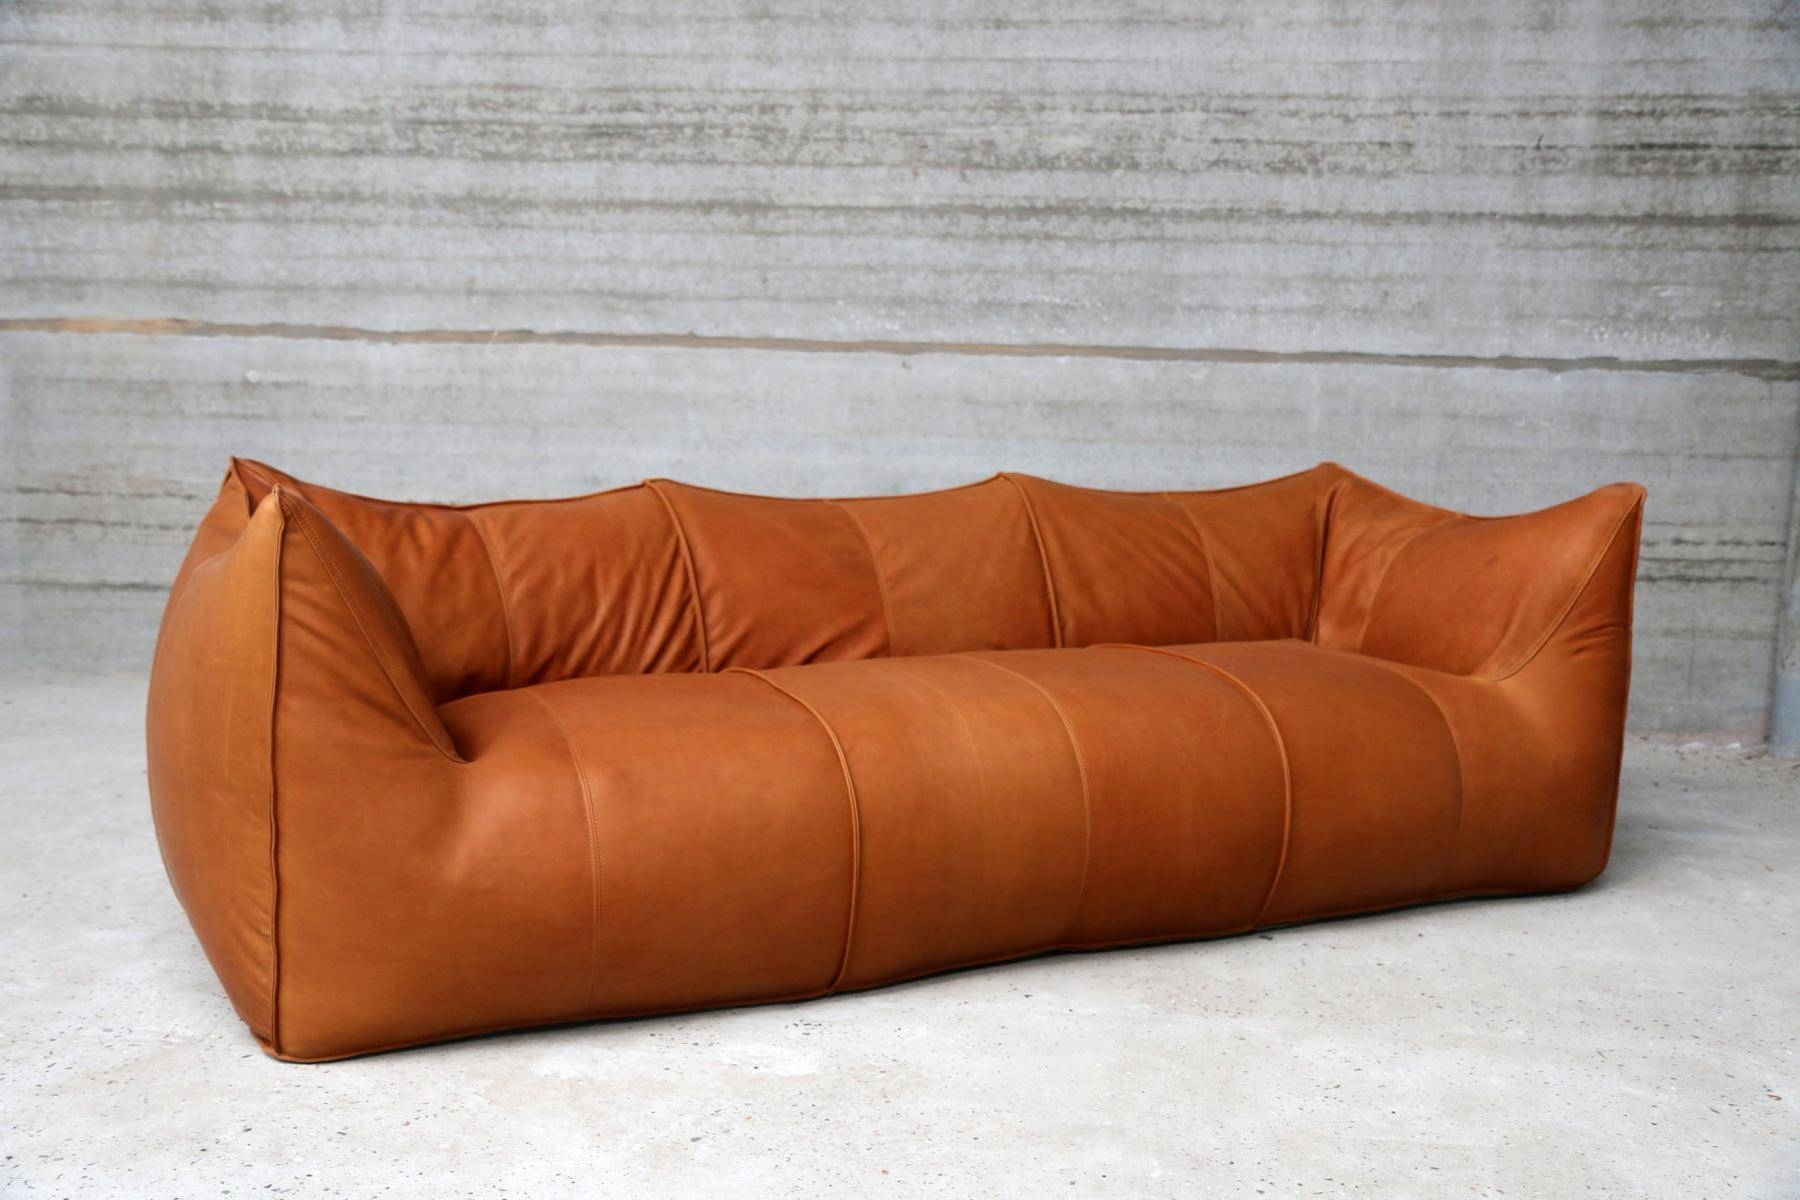 Vintage Bambole Three-Seater Sofamario Bellini For B&b Italia with regard to Bellini Couches (Image 13 of 15)